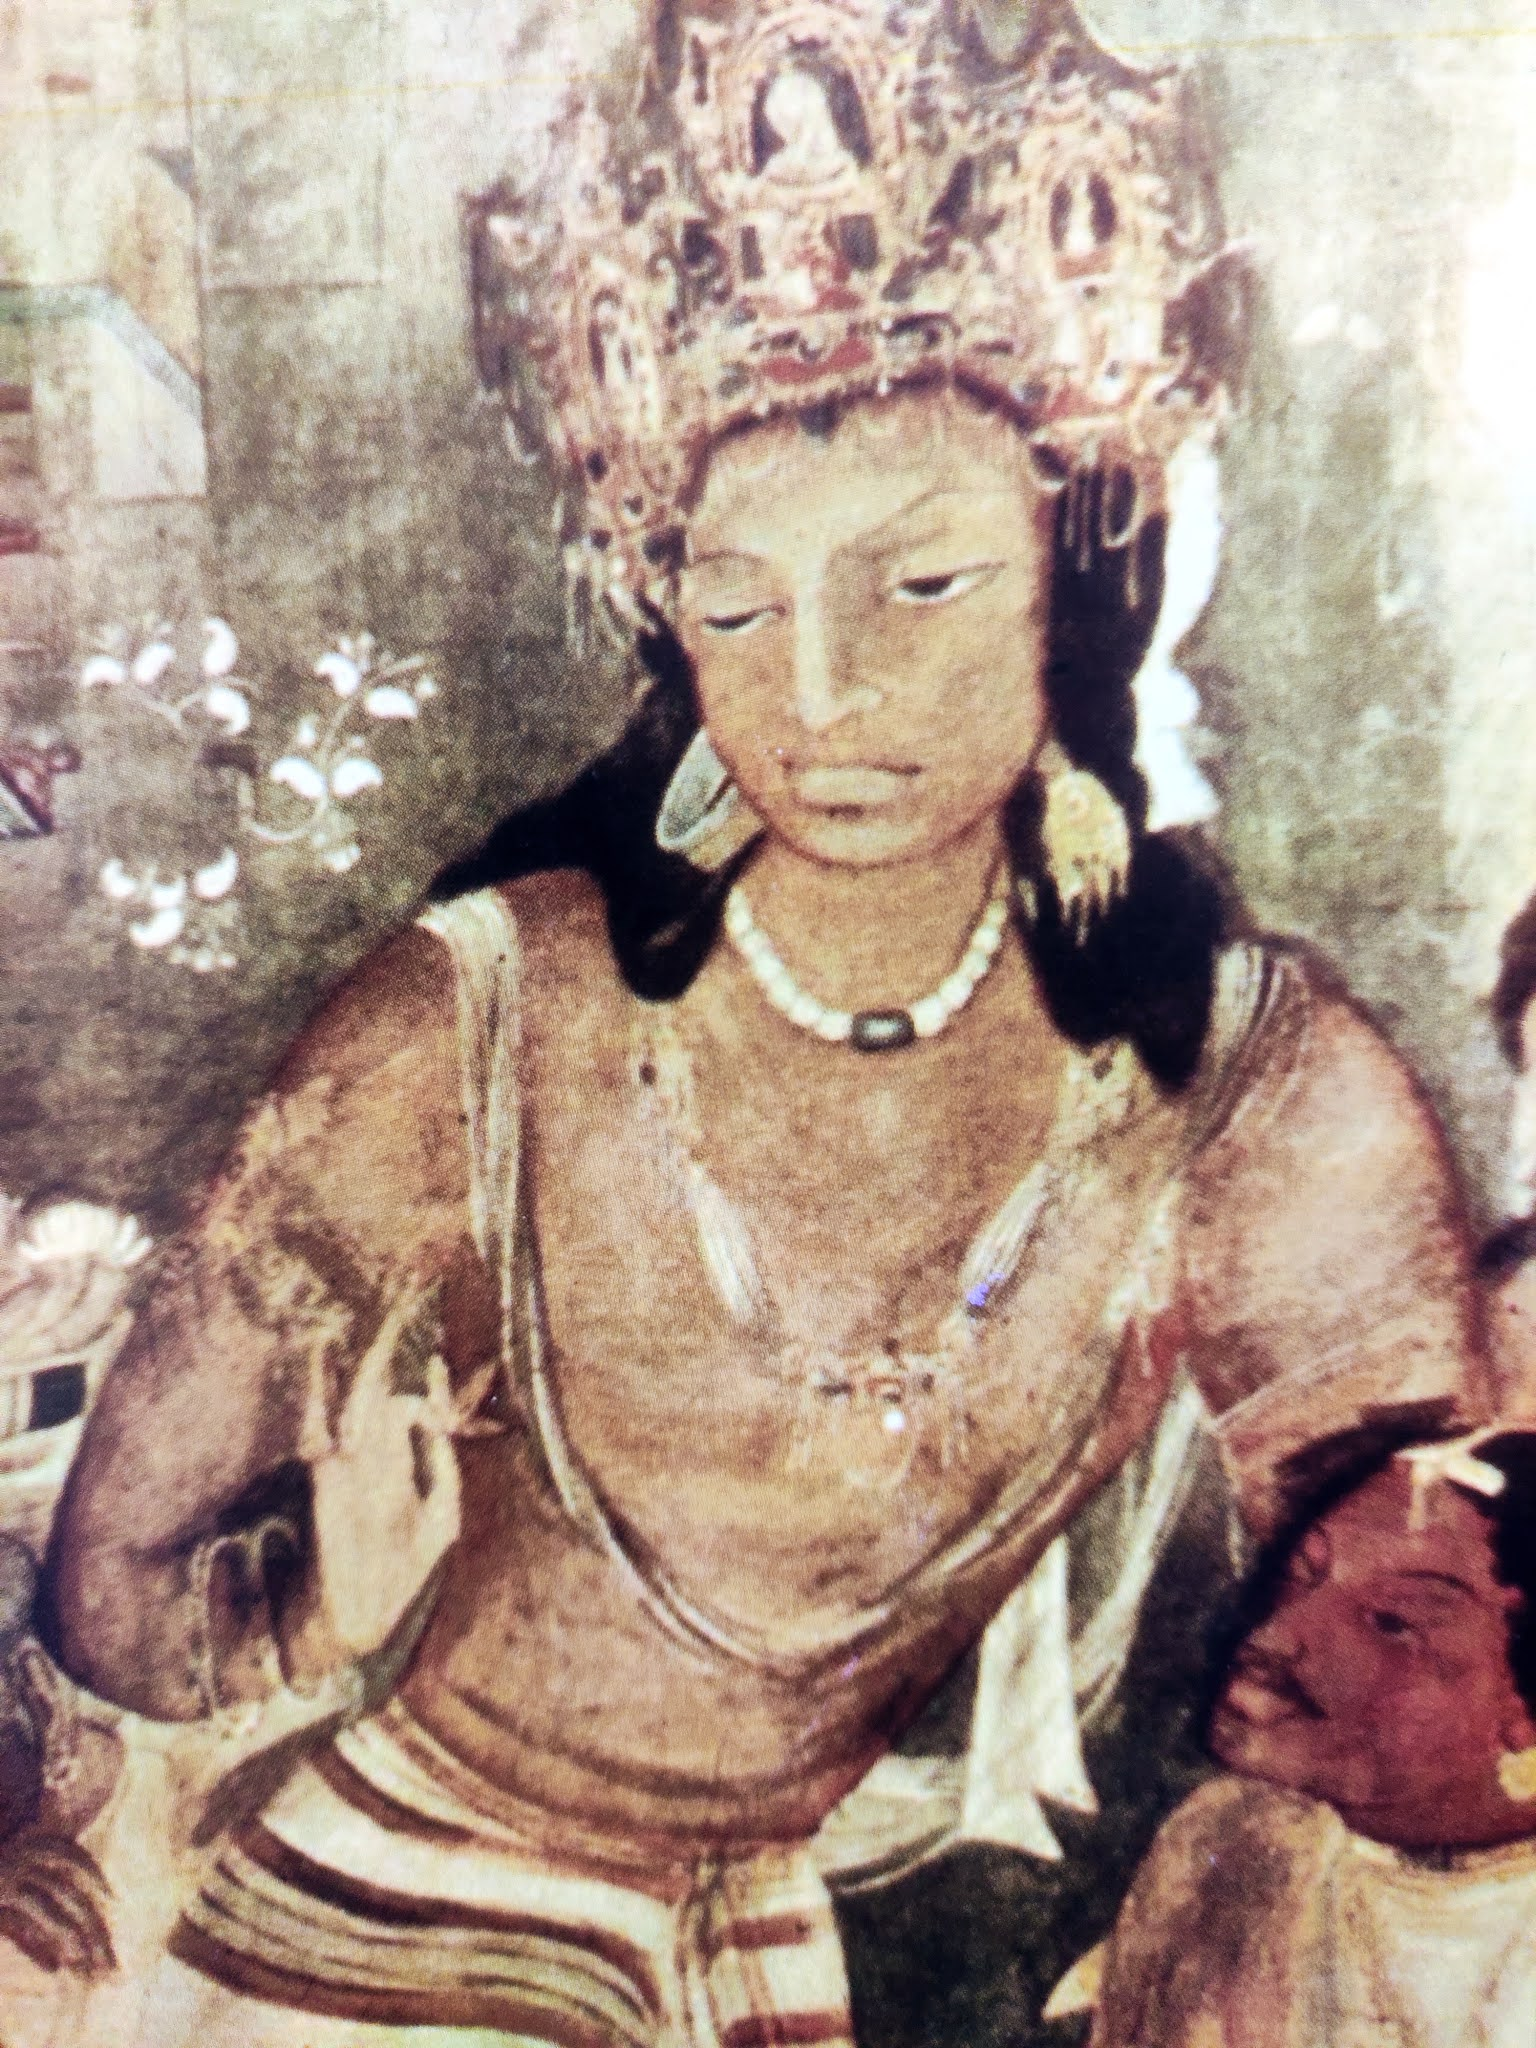 Image contains lords of ajanta caves